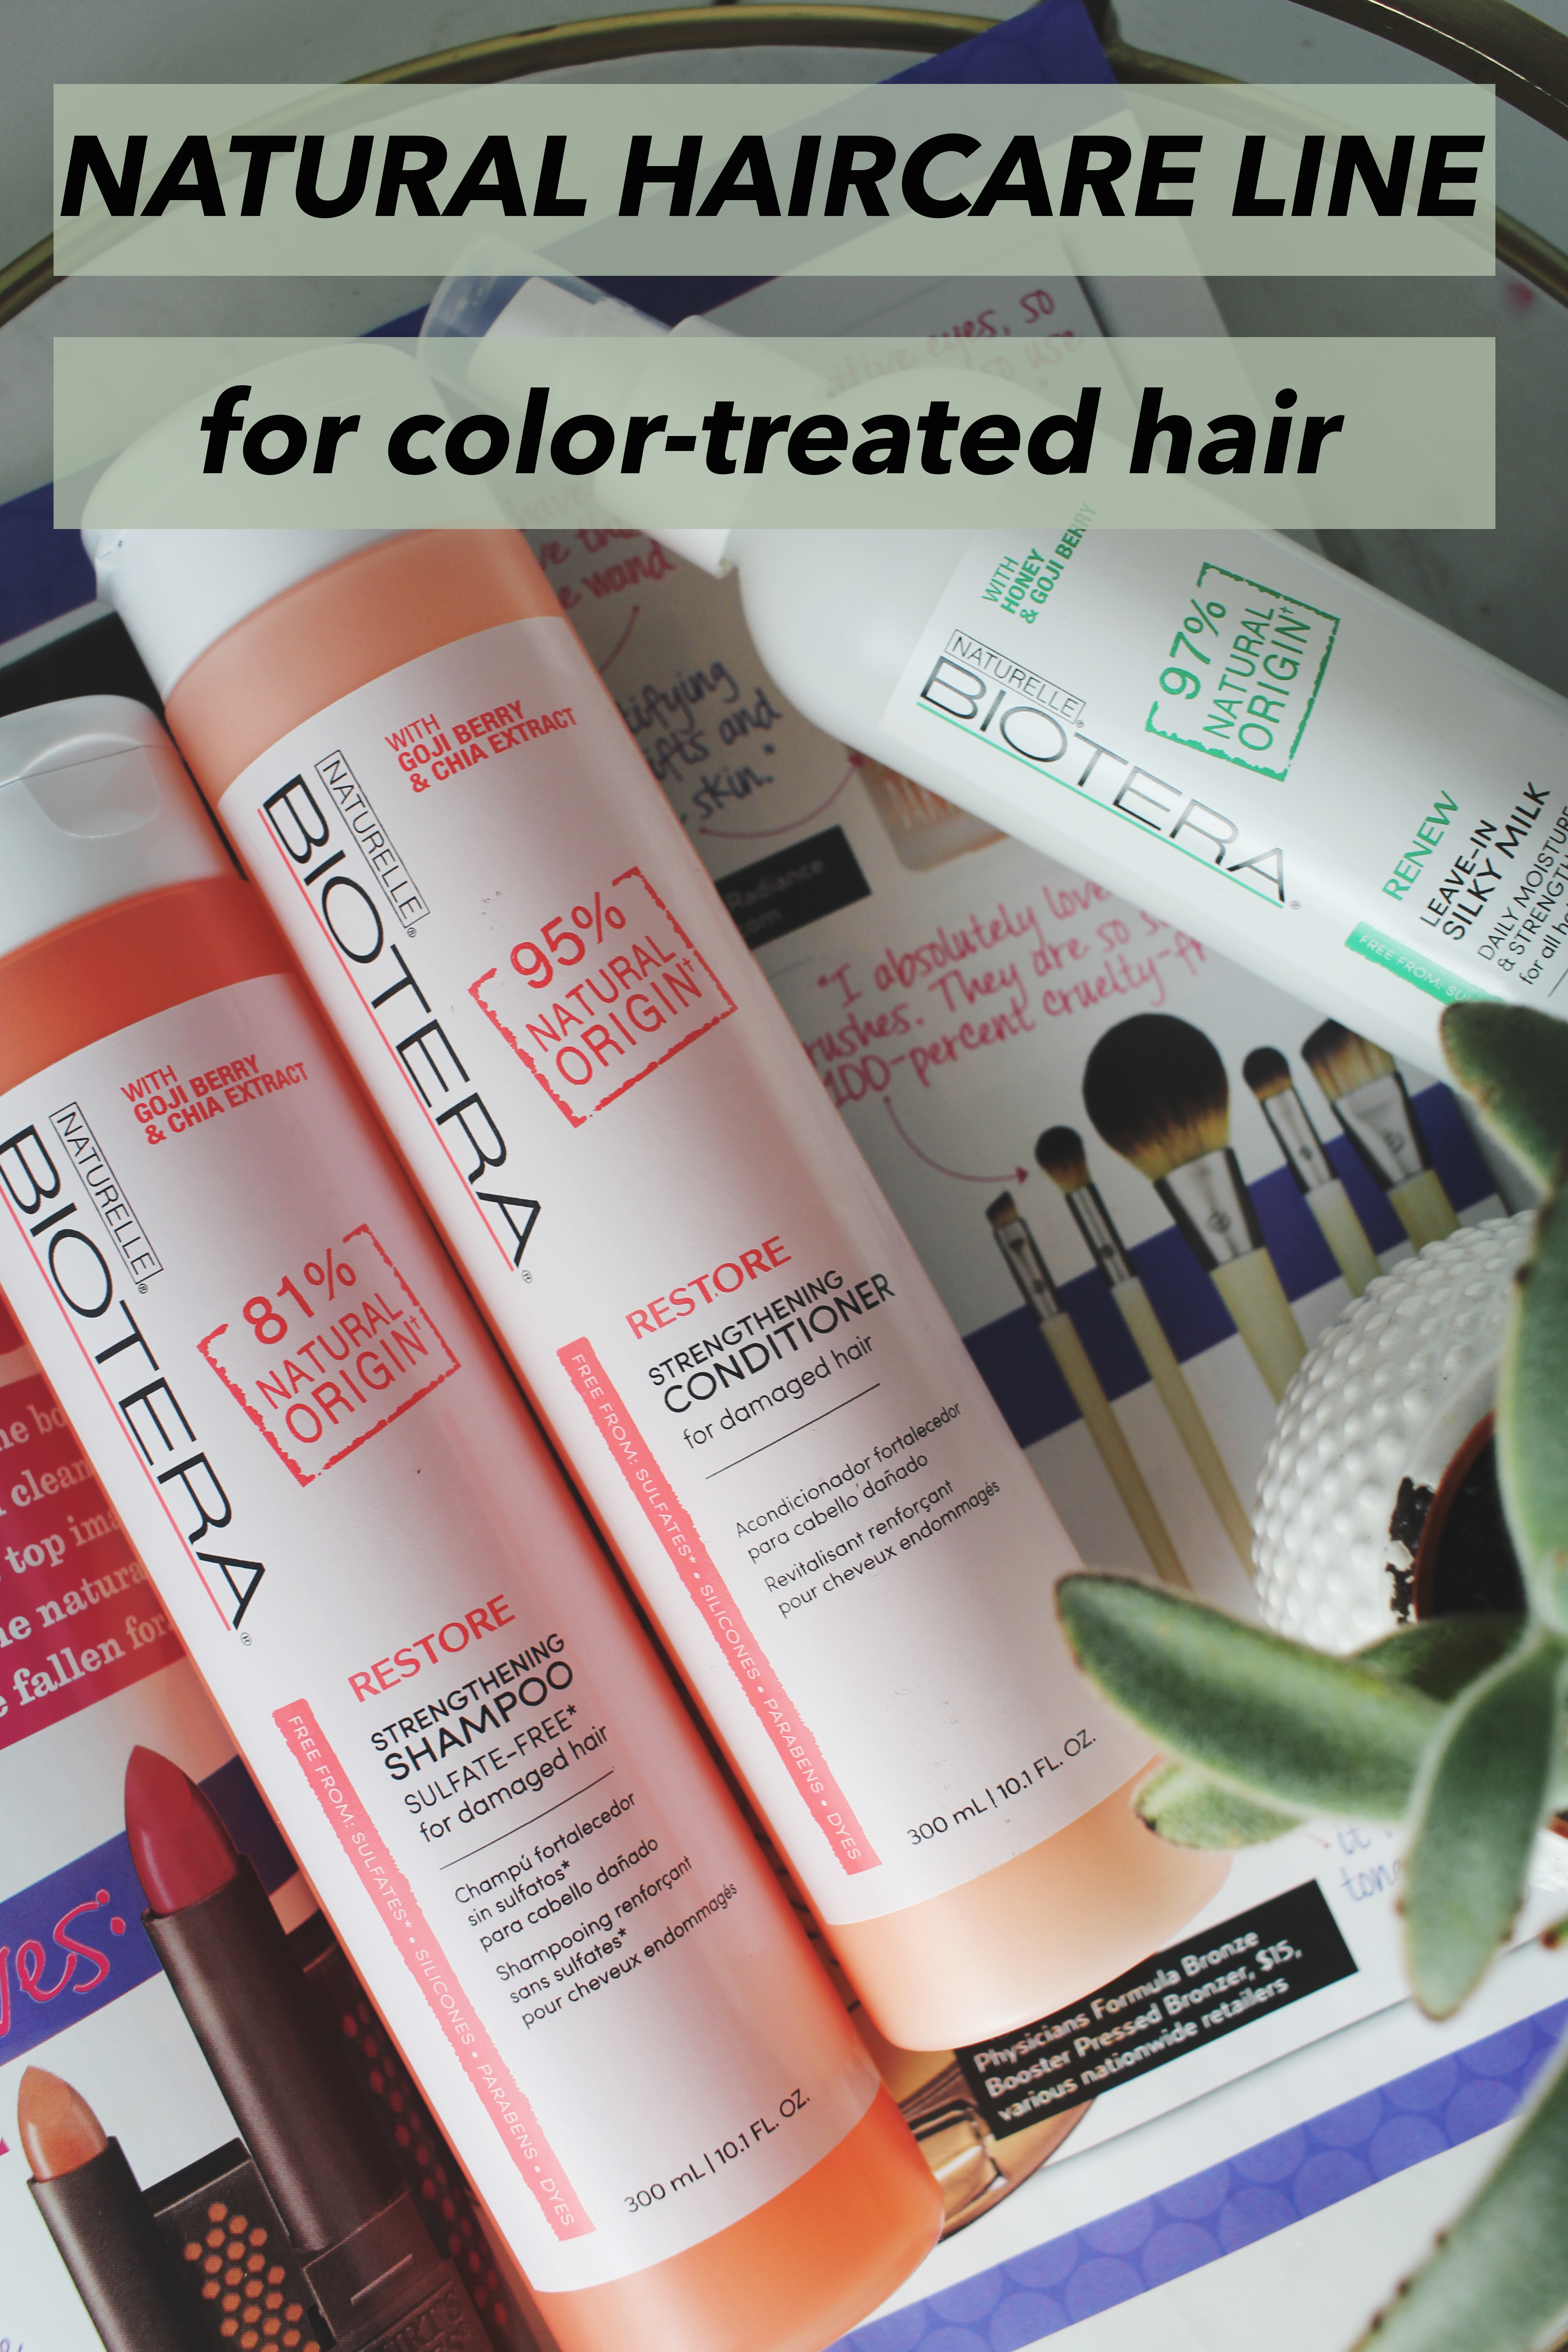 Natural Haircare Line for Color-Treated Hair